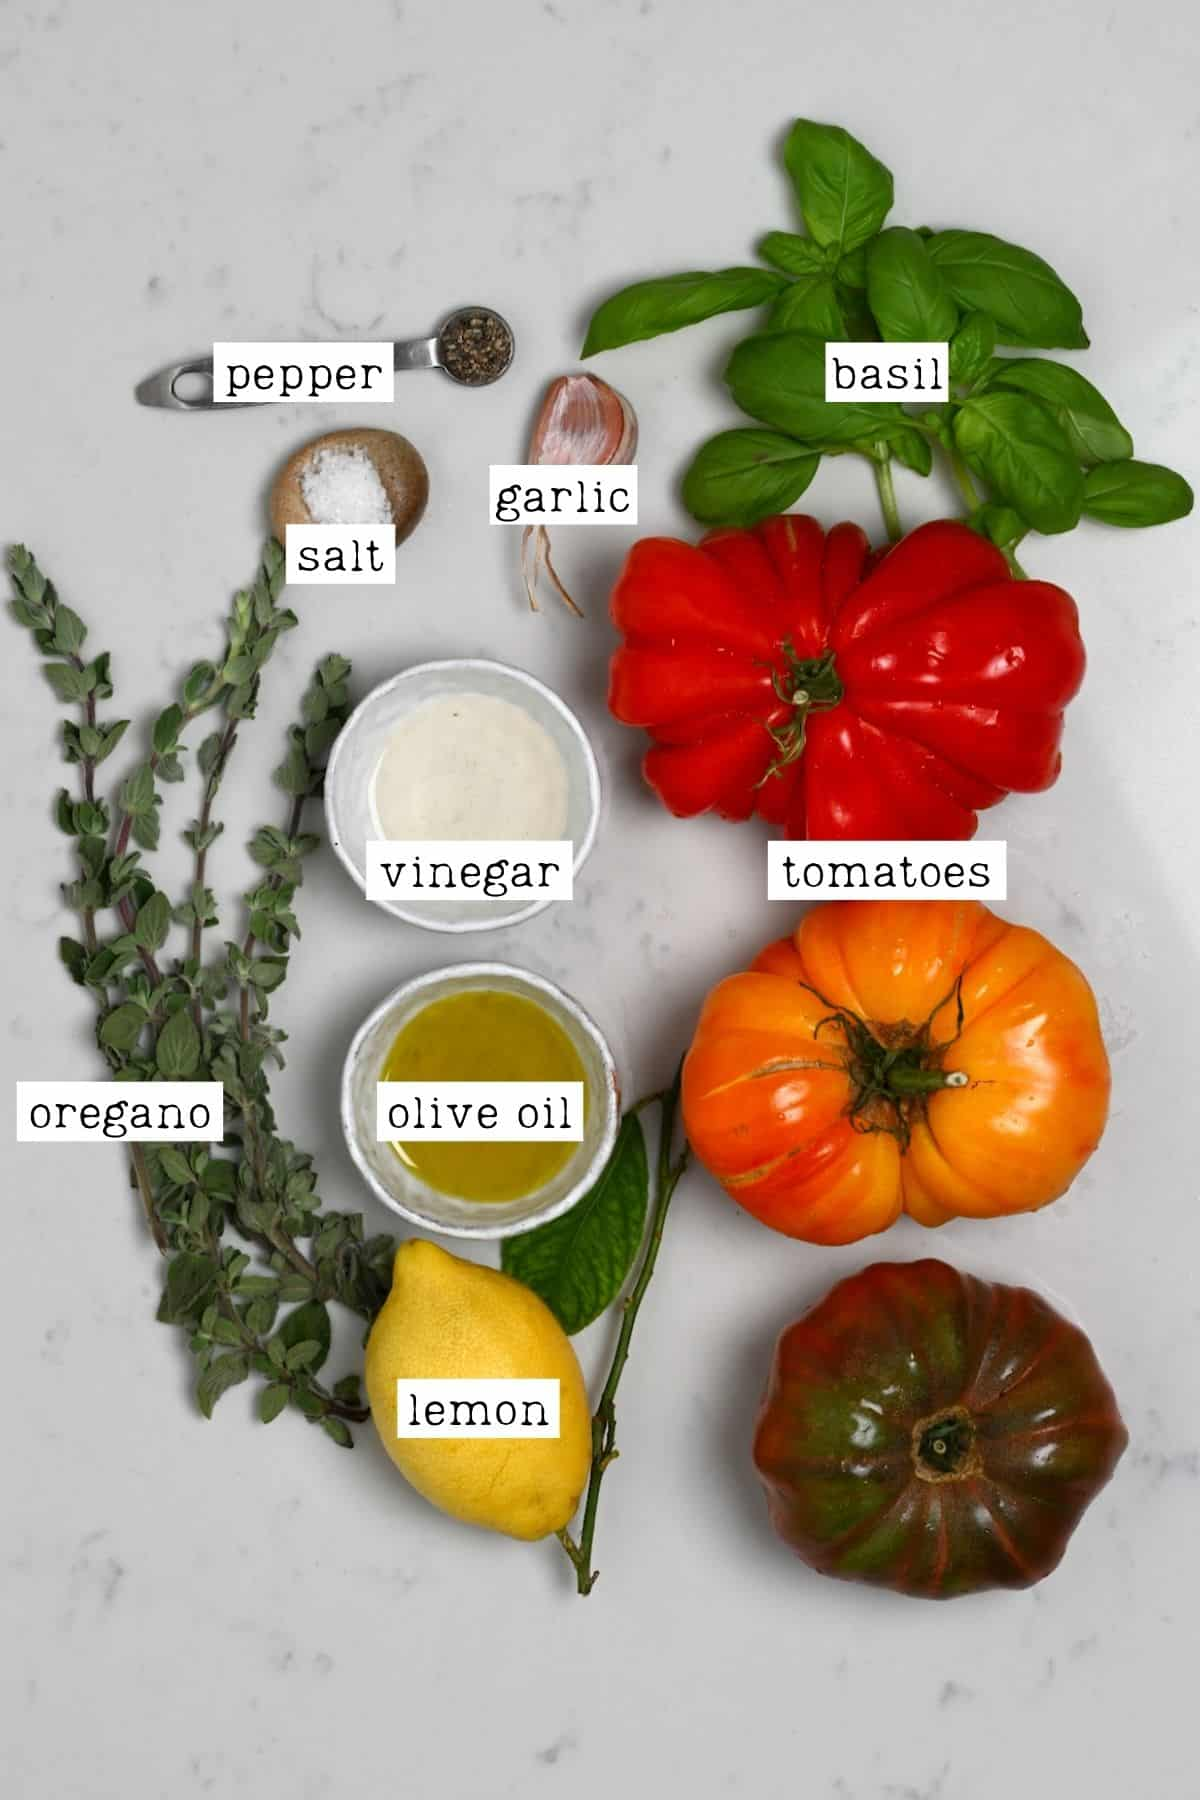 Ingredients for simple tomato salad